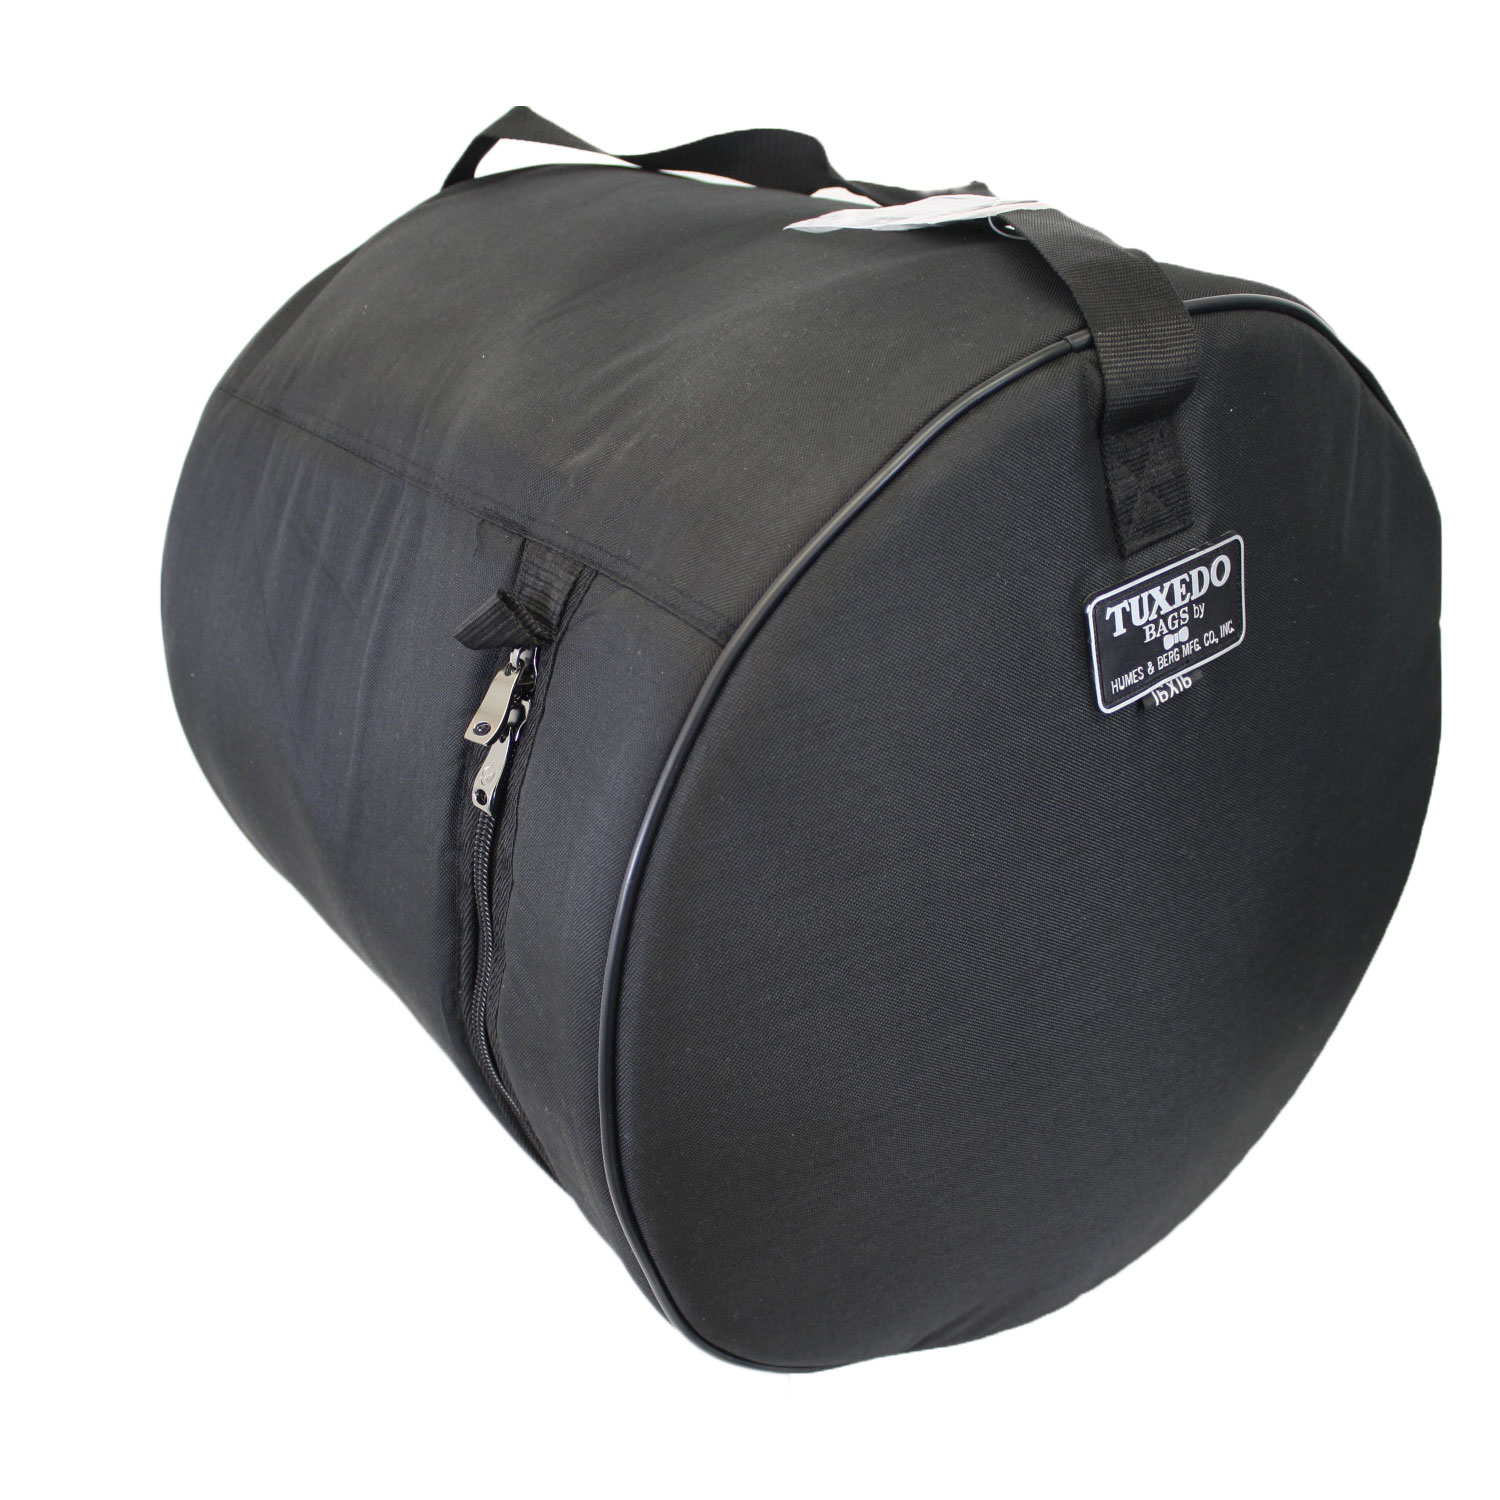 "Humes & Berg 8"" (Deep) x 8"" (Diameter) Tuxedo Tom Bag/Soft Case"